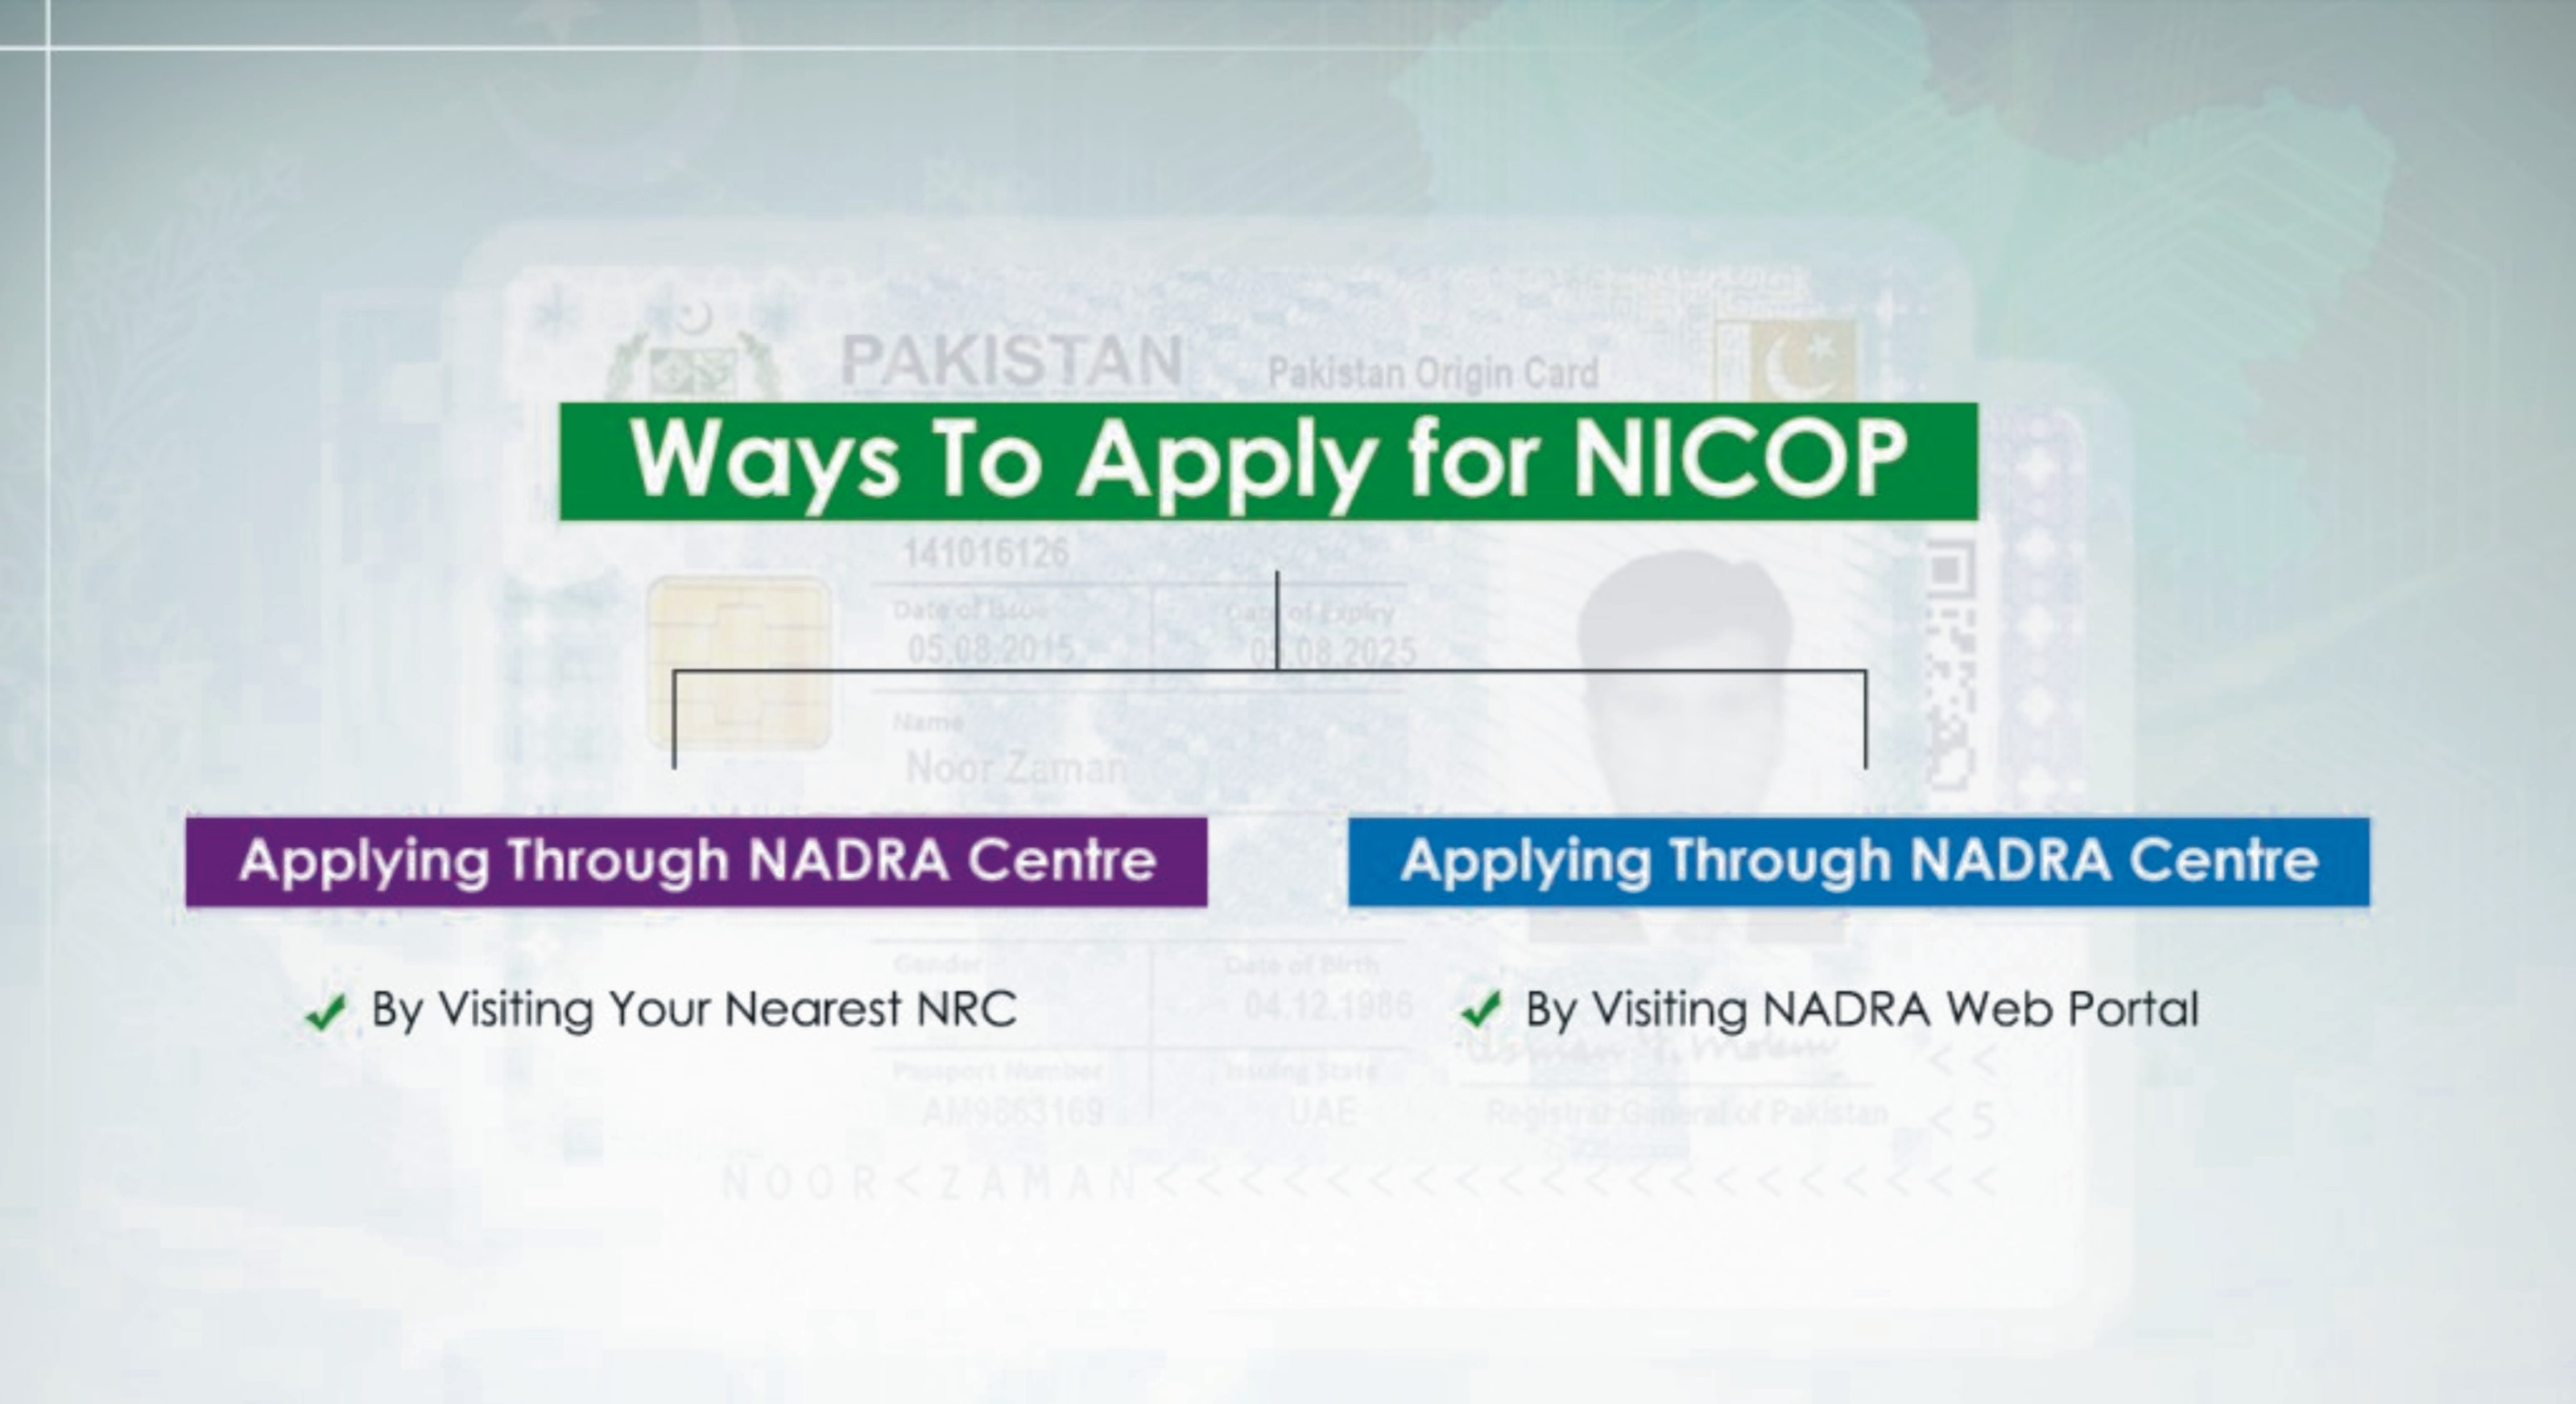 HOW TO APPLY FOR NICOP?